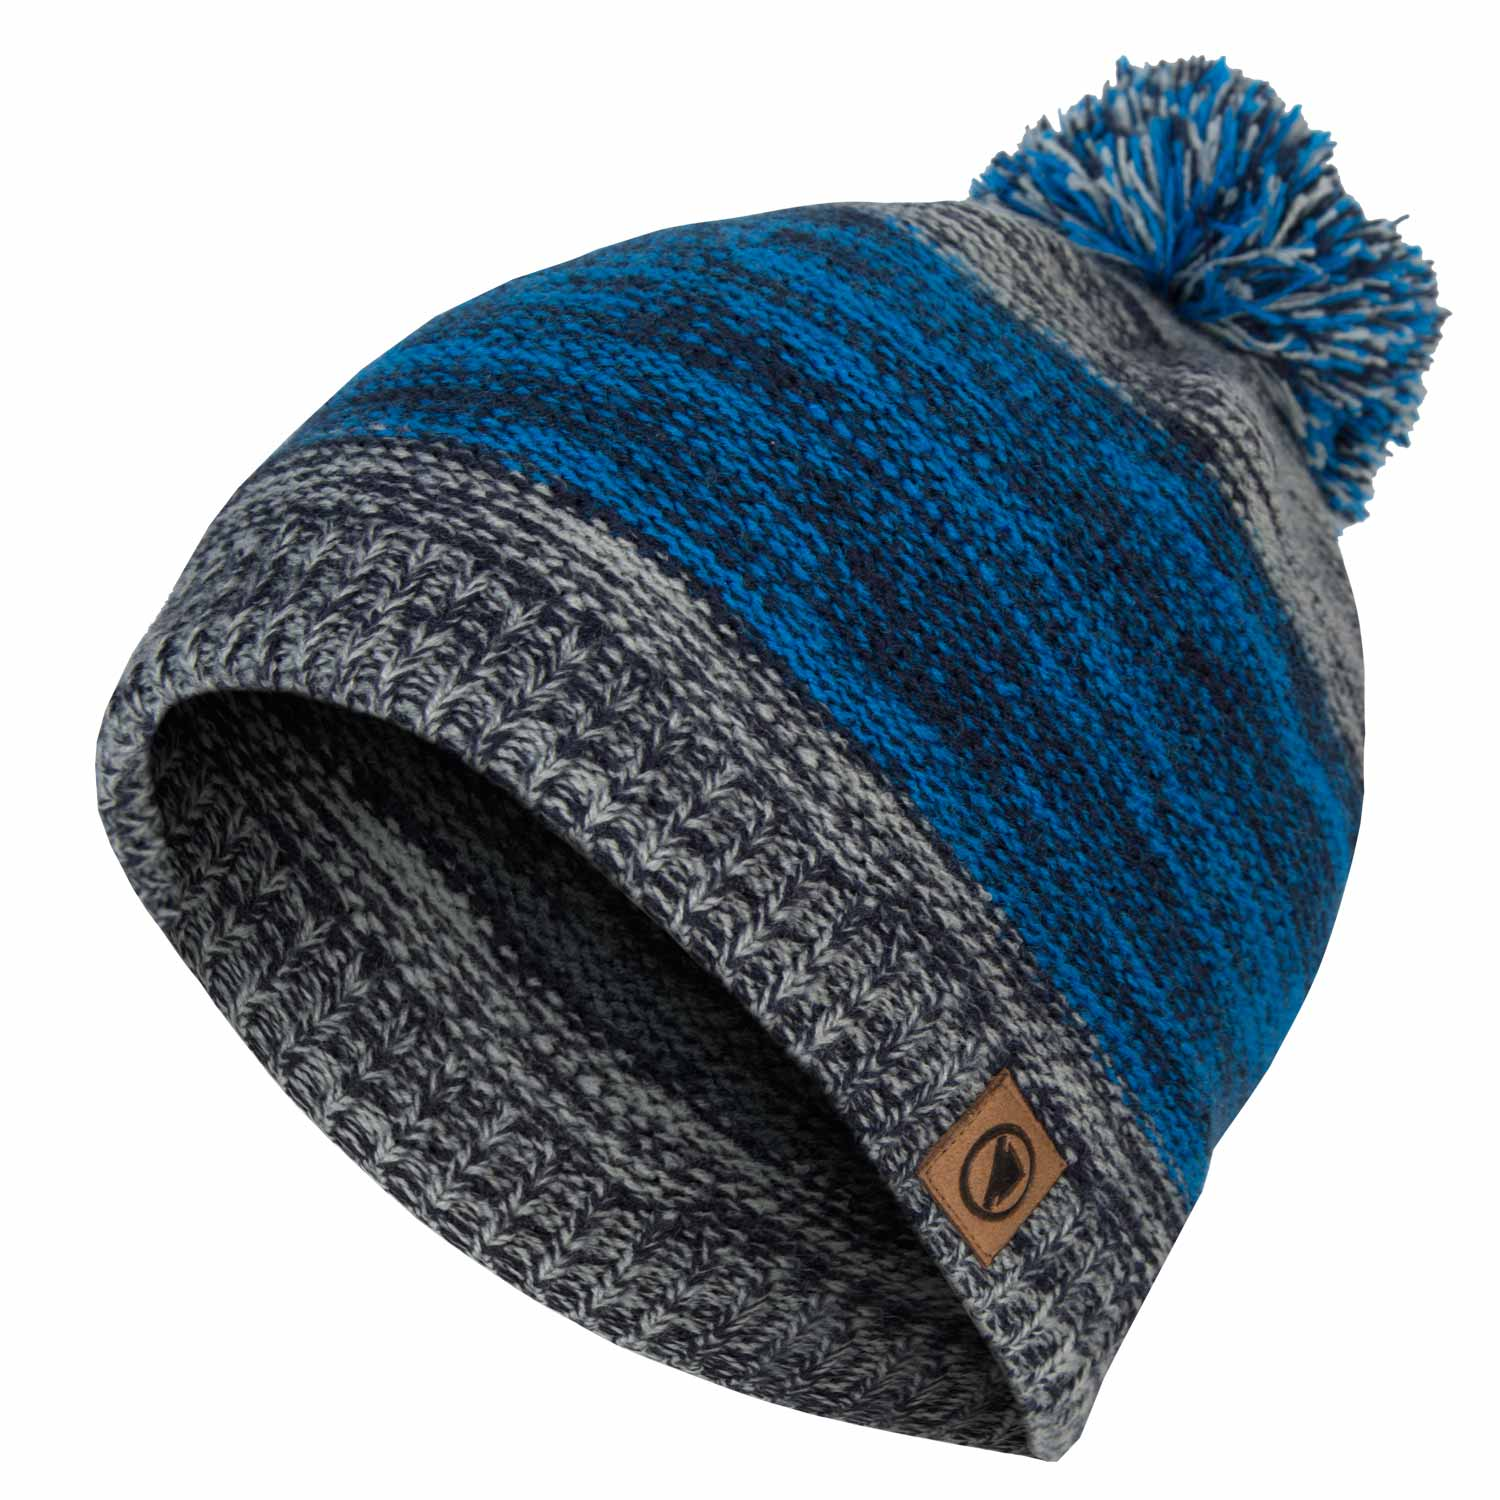 ad95b1cb630 ENDURA ONE CLAN BOBBLE BEANIE NAVY £14.99